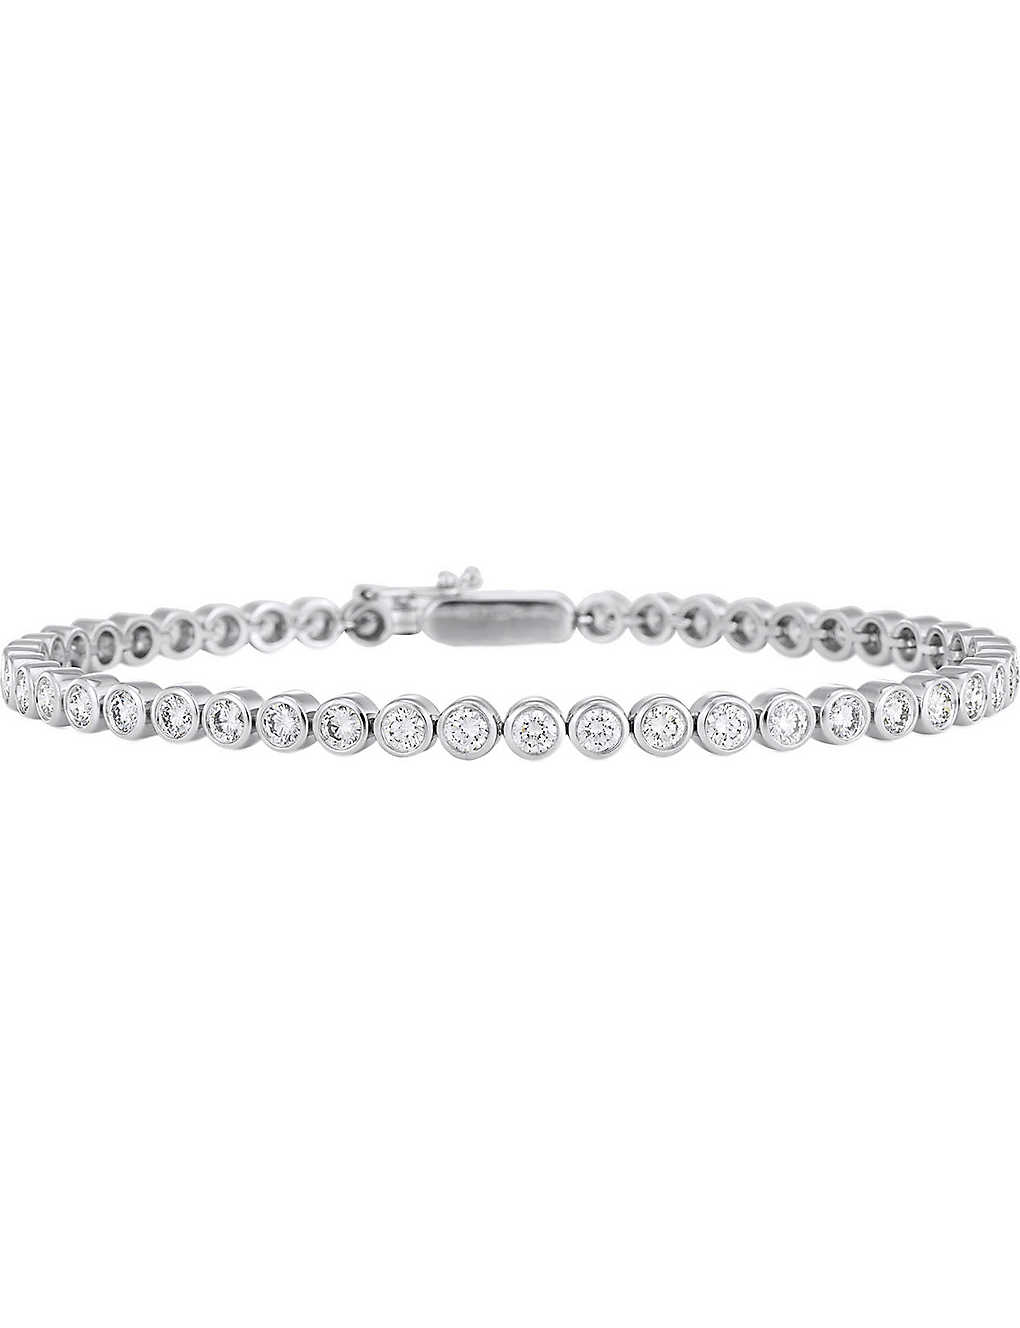 DE BEERS: Eternity 18ct white-gold and diamond bracelet